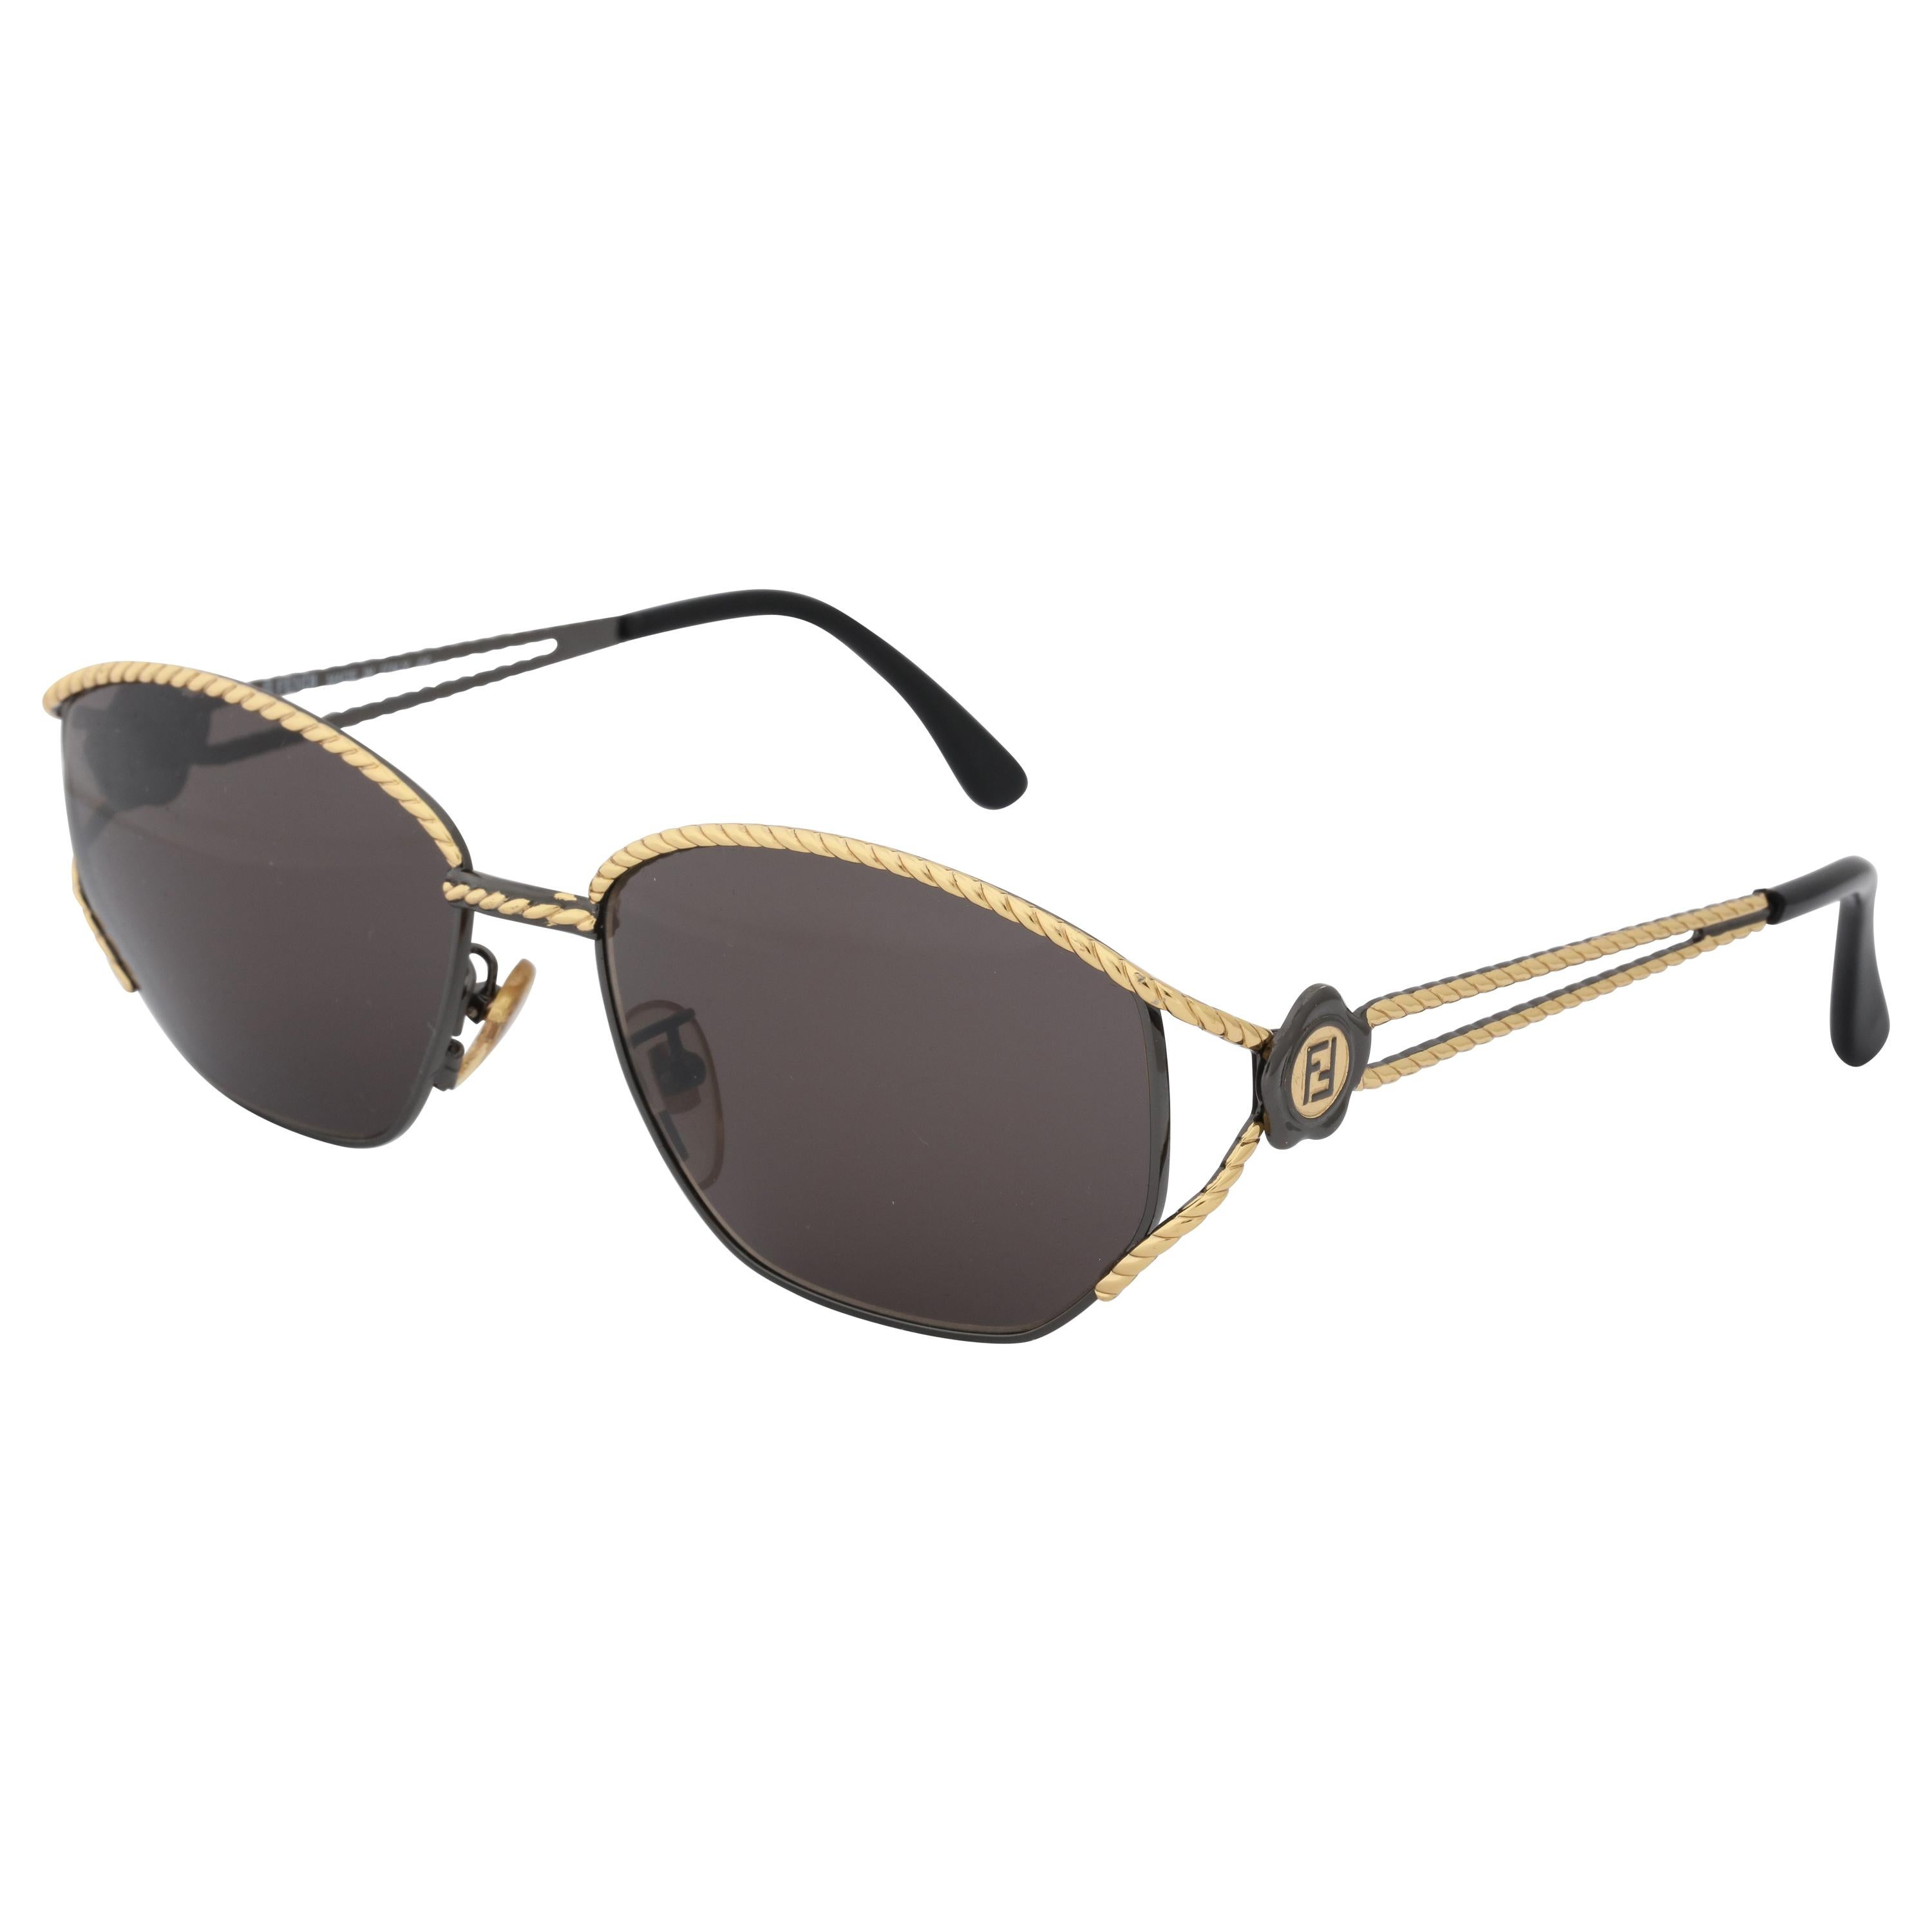 2aabcdc3bde4b Vintage Fendi Sunglasses For Sale at 1stdibs